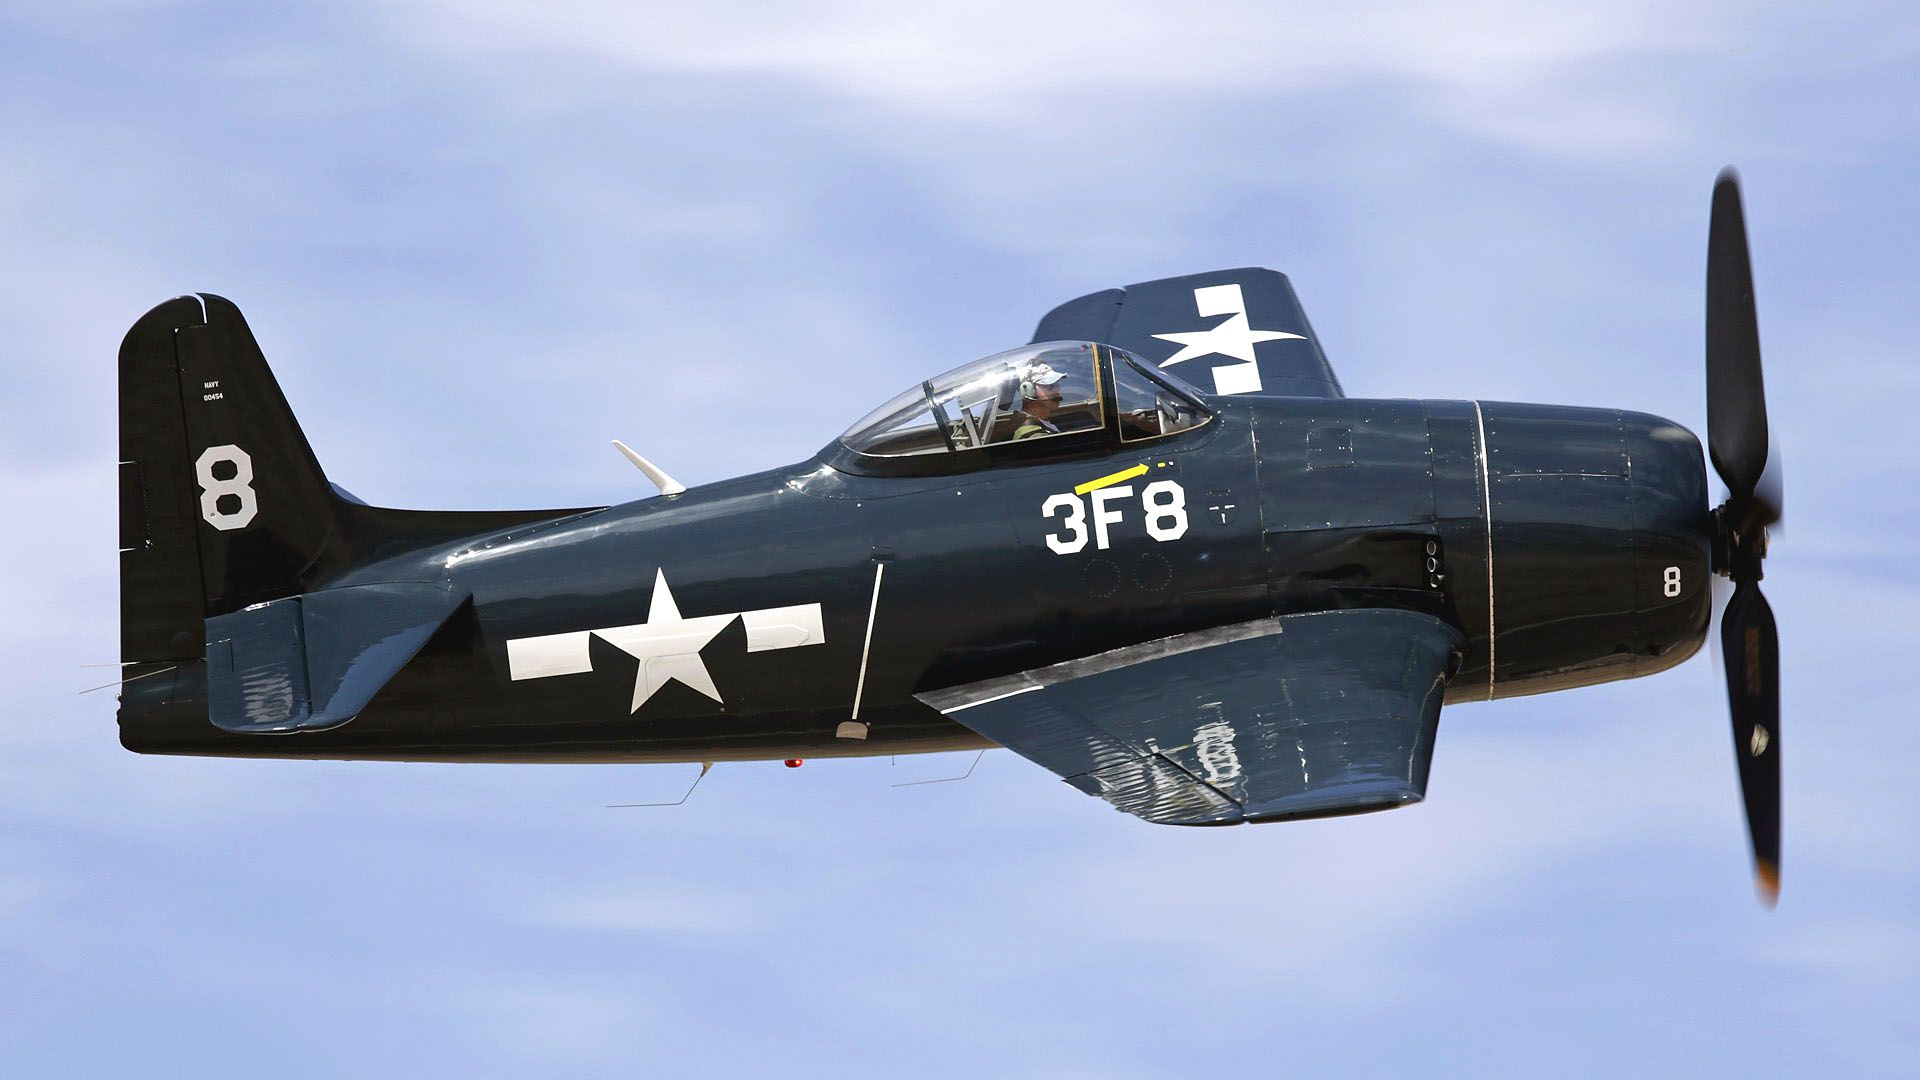 Considered One Of The Fastest Planes At High Aludes And In Dives Yes Even Faster Than P 51d It Was As A Er Missile Interceptor